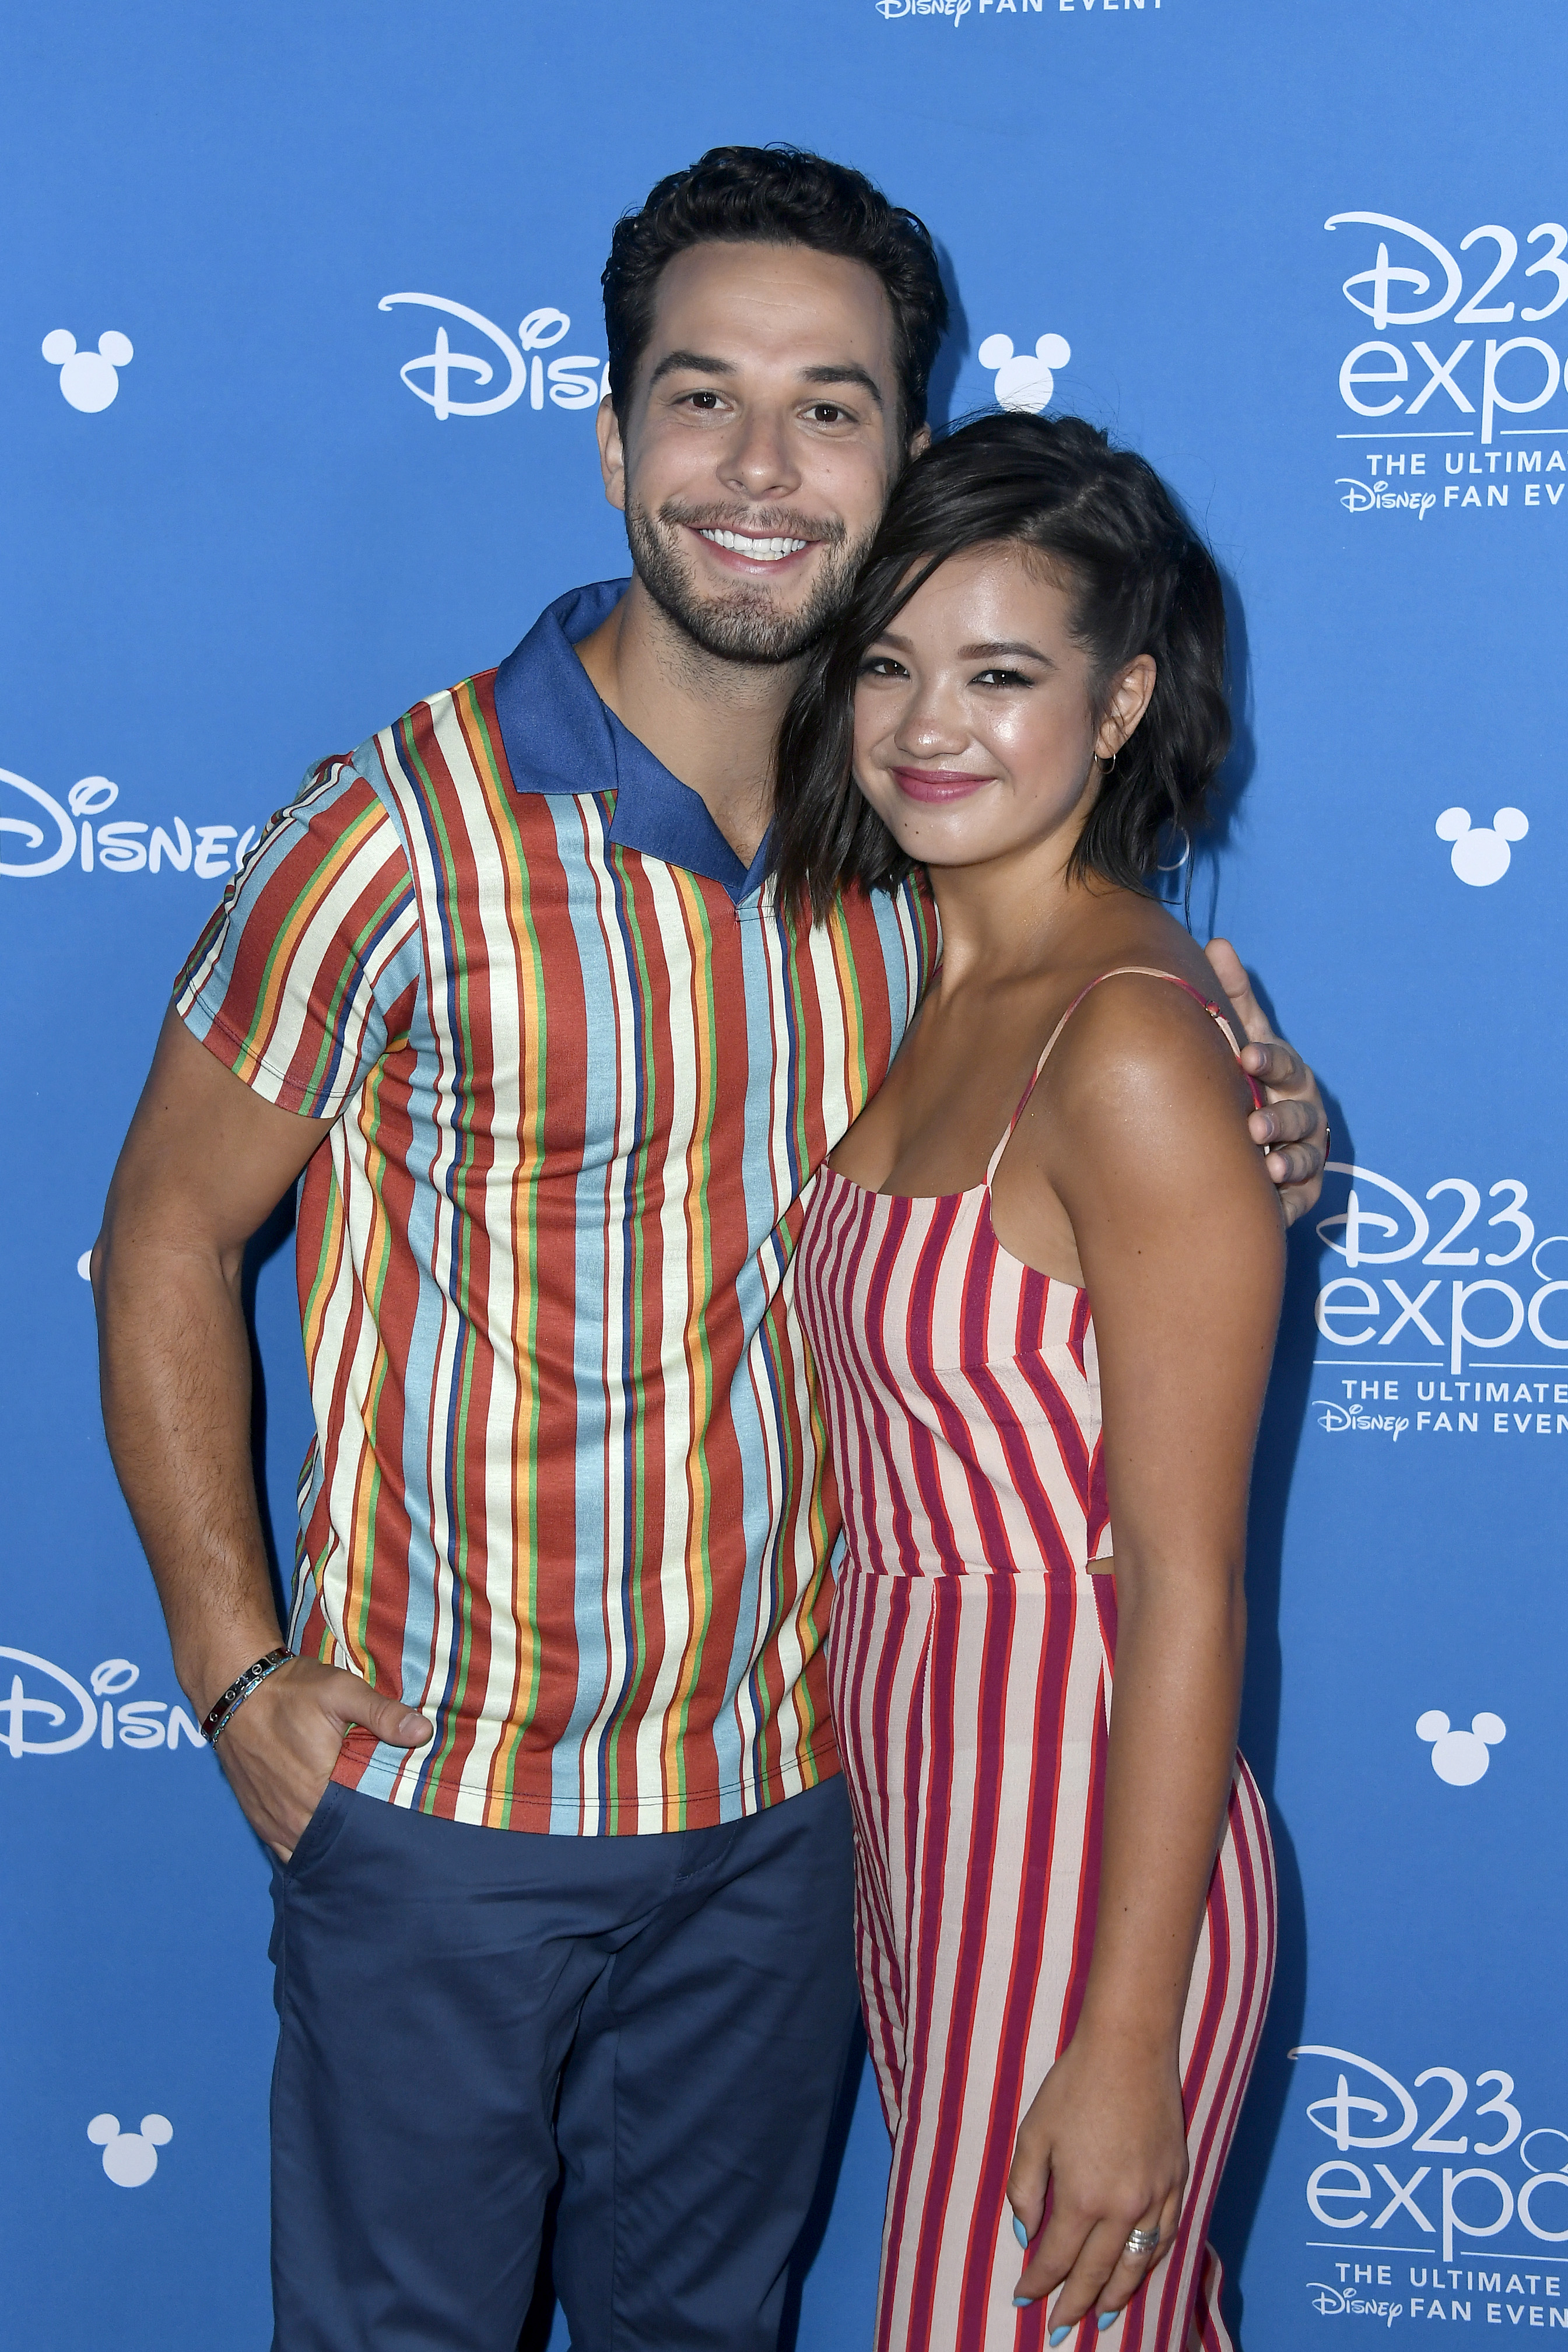 Skylar Astin and Peyton Elizabeth Lee at an event for Andi Mack (2017)